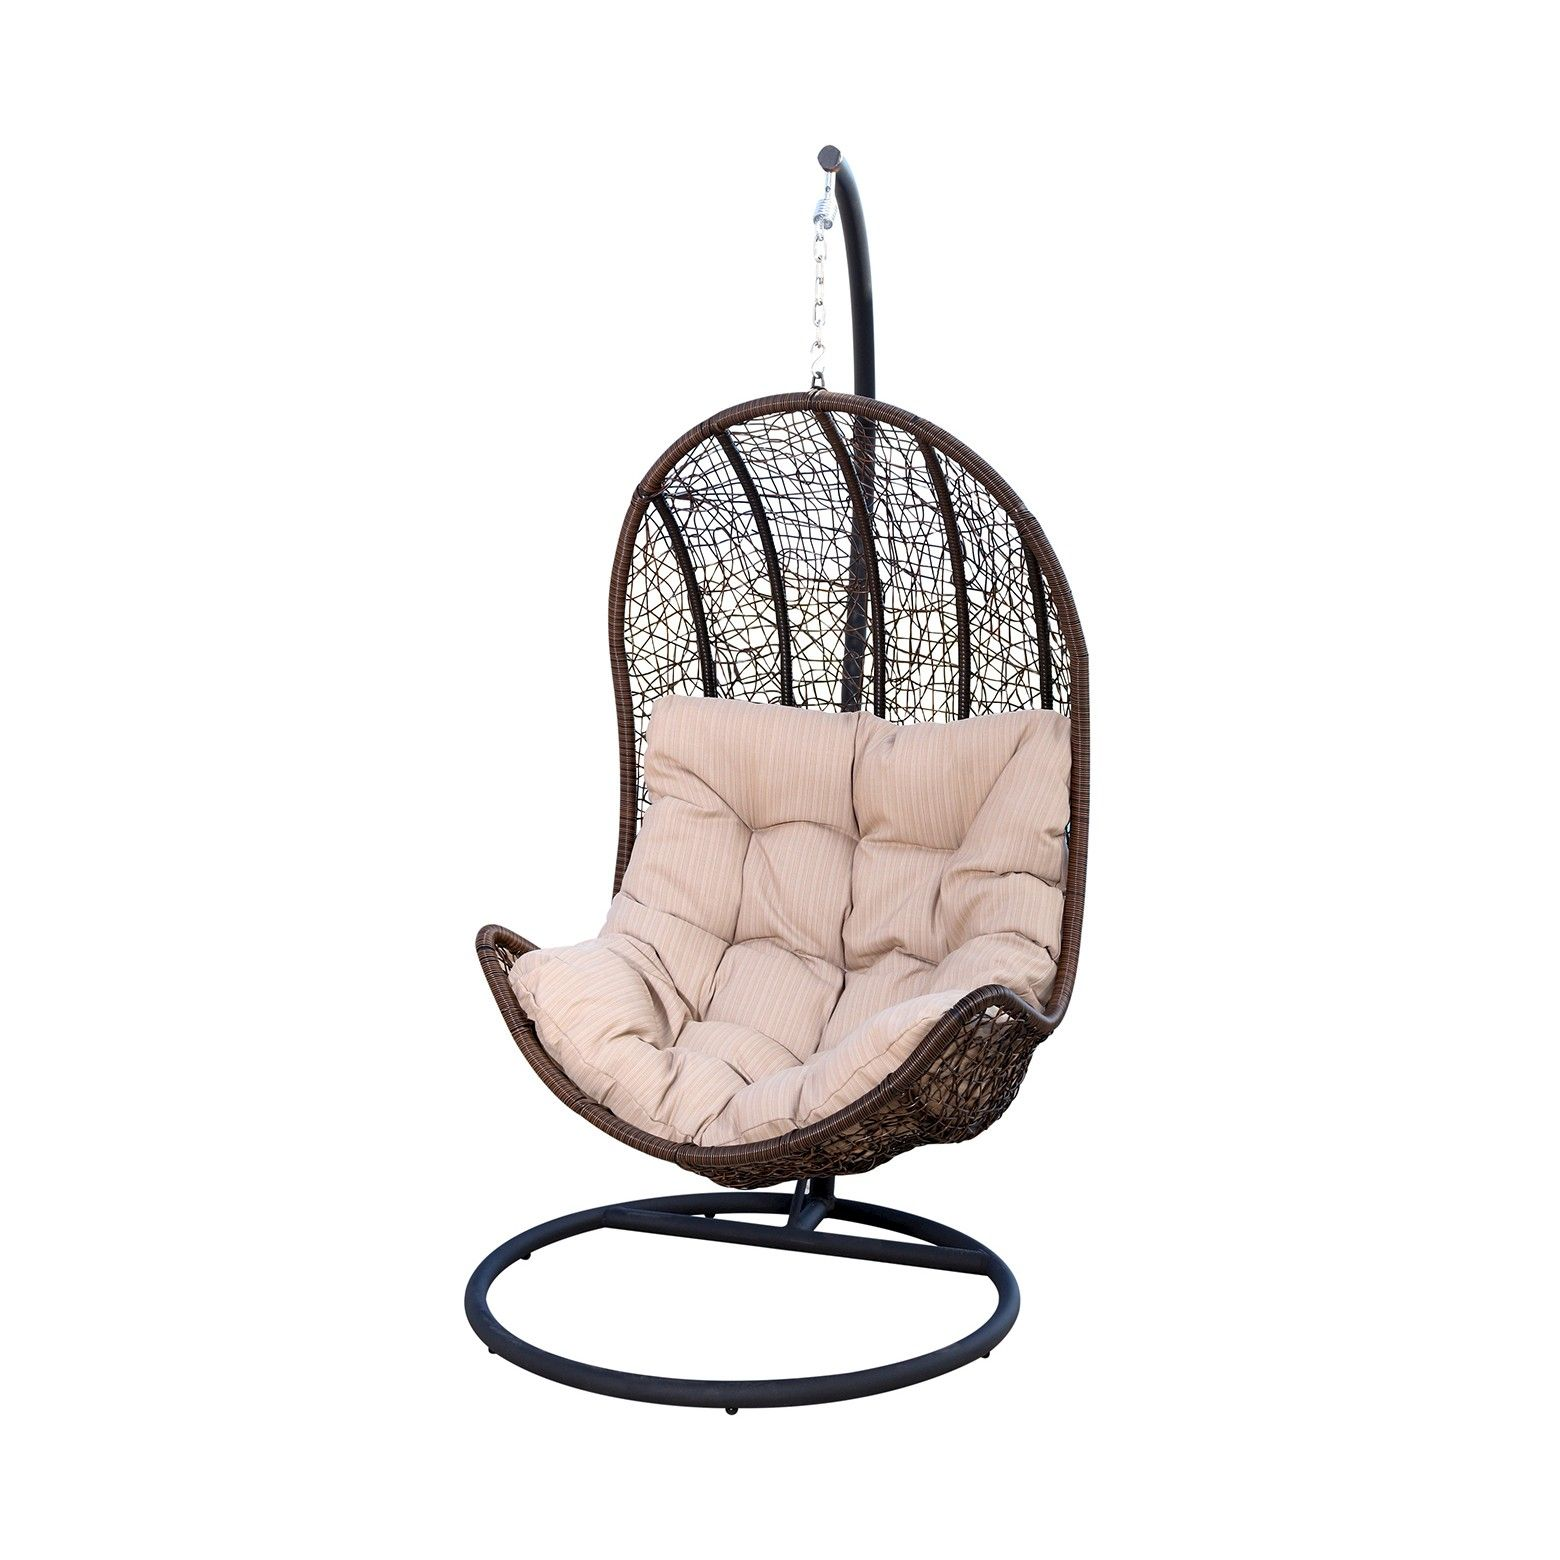 Newport Outdoor Wicker Egg Shaped Swing Chair Brown